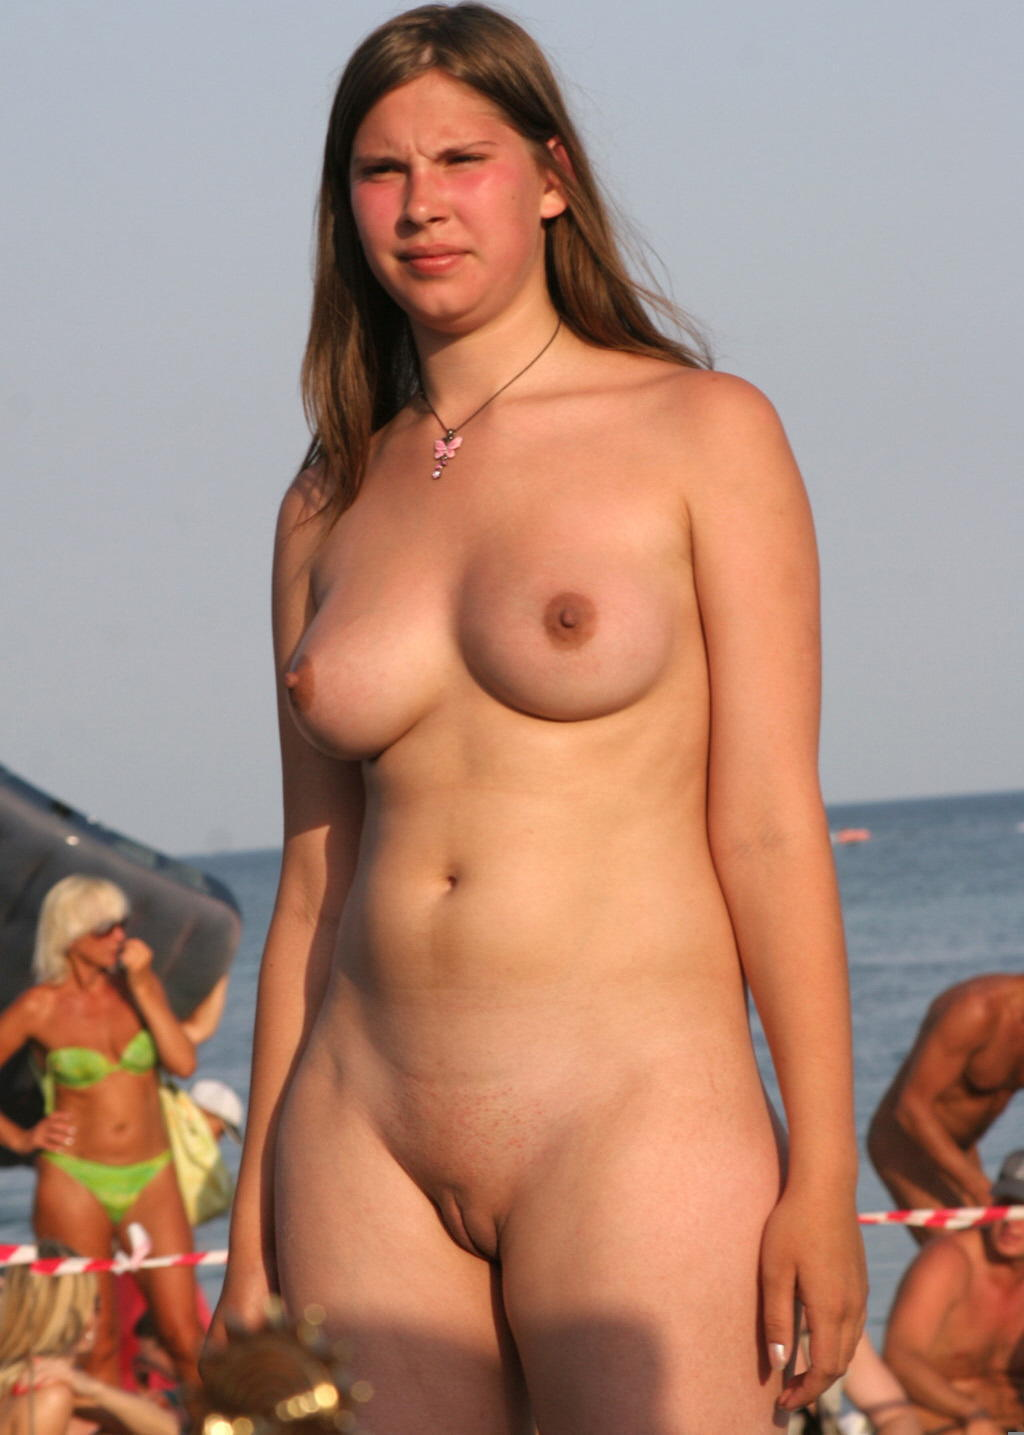 young family naturist hot amateur naked nudist